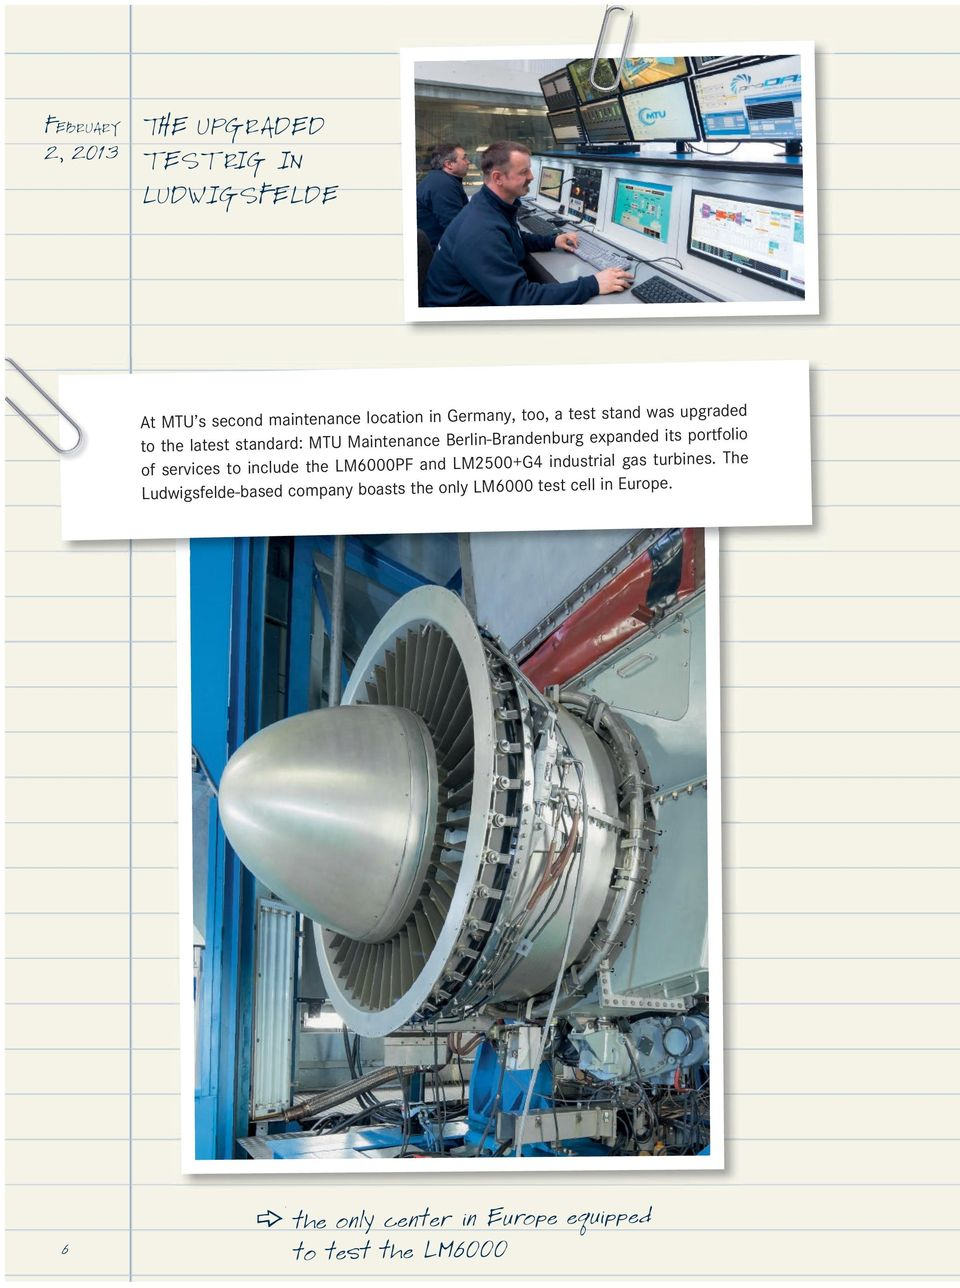 portfolio of services to include the LM6000PF and LM2500+G4 industrial gas turbines.